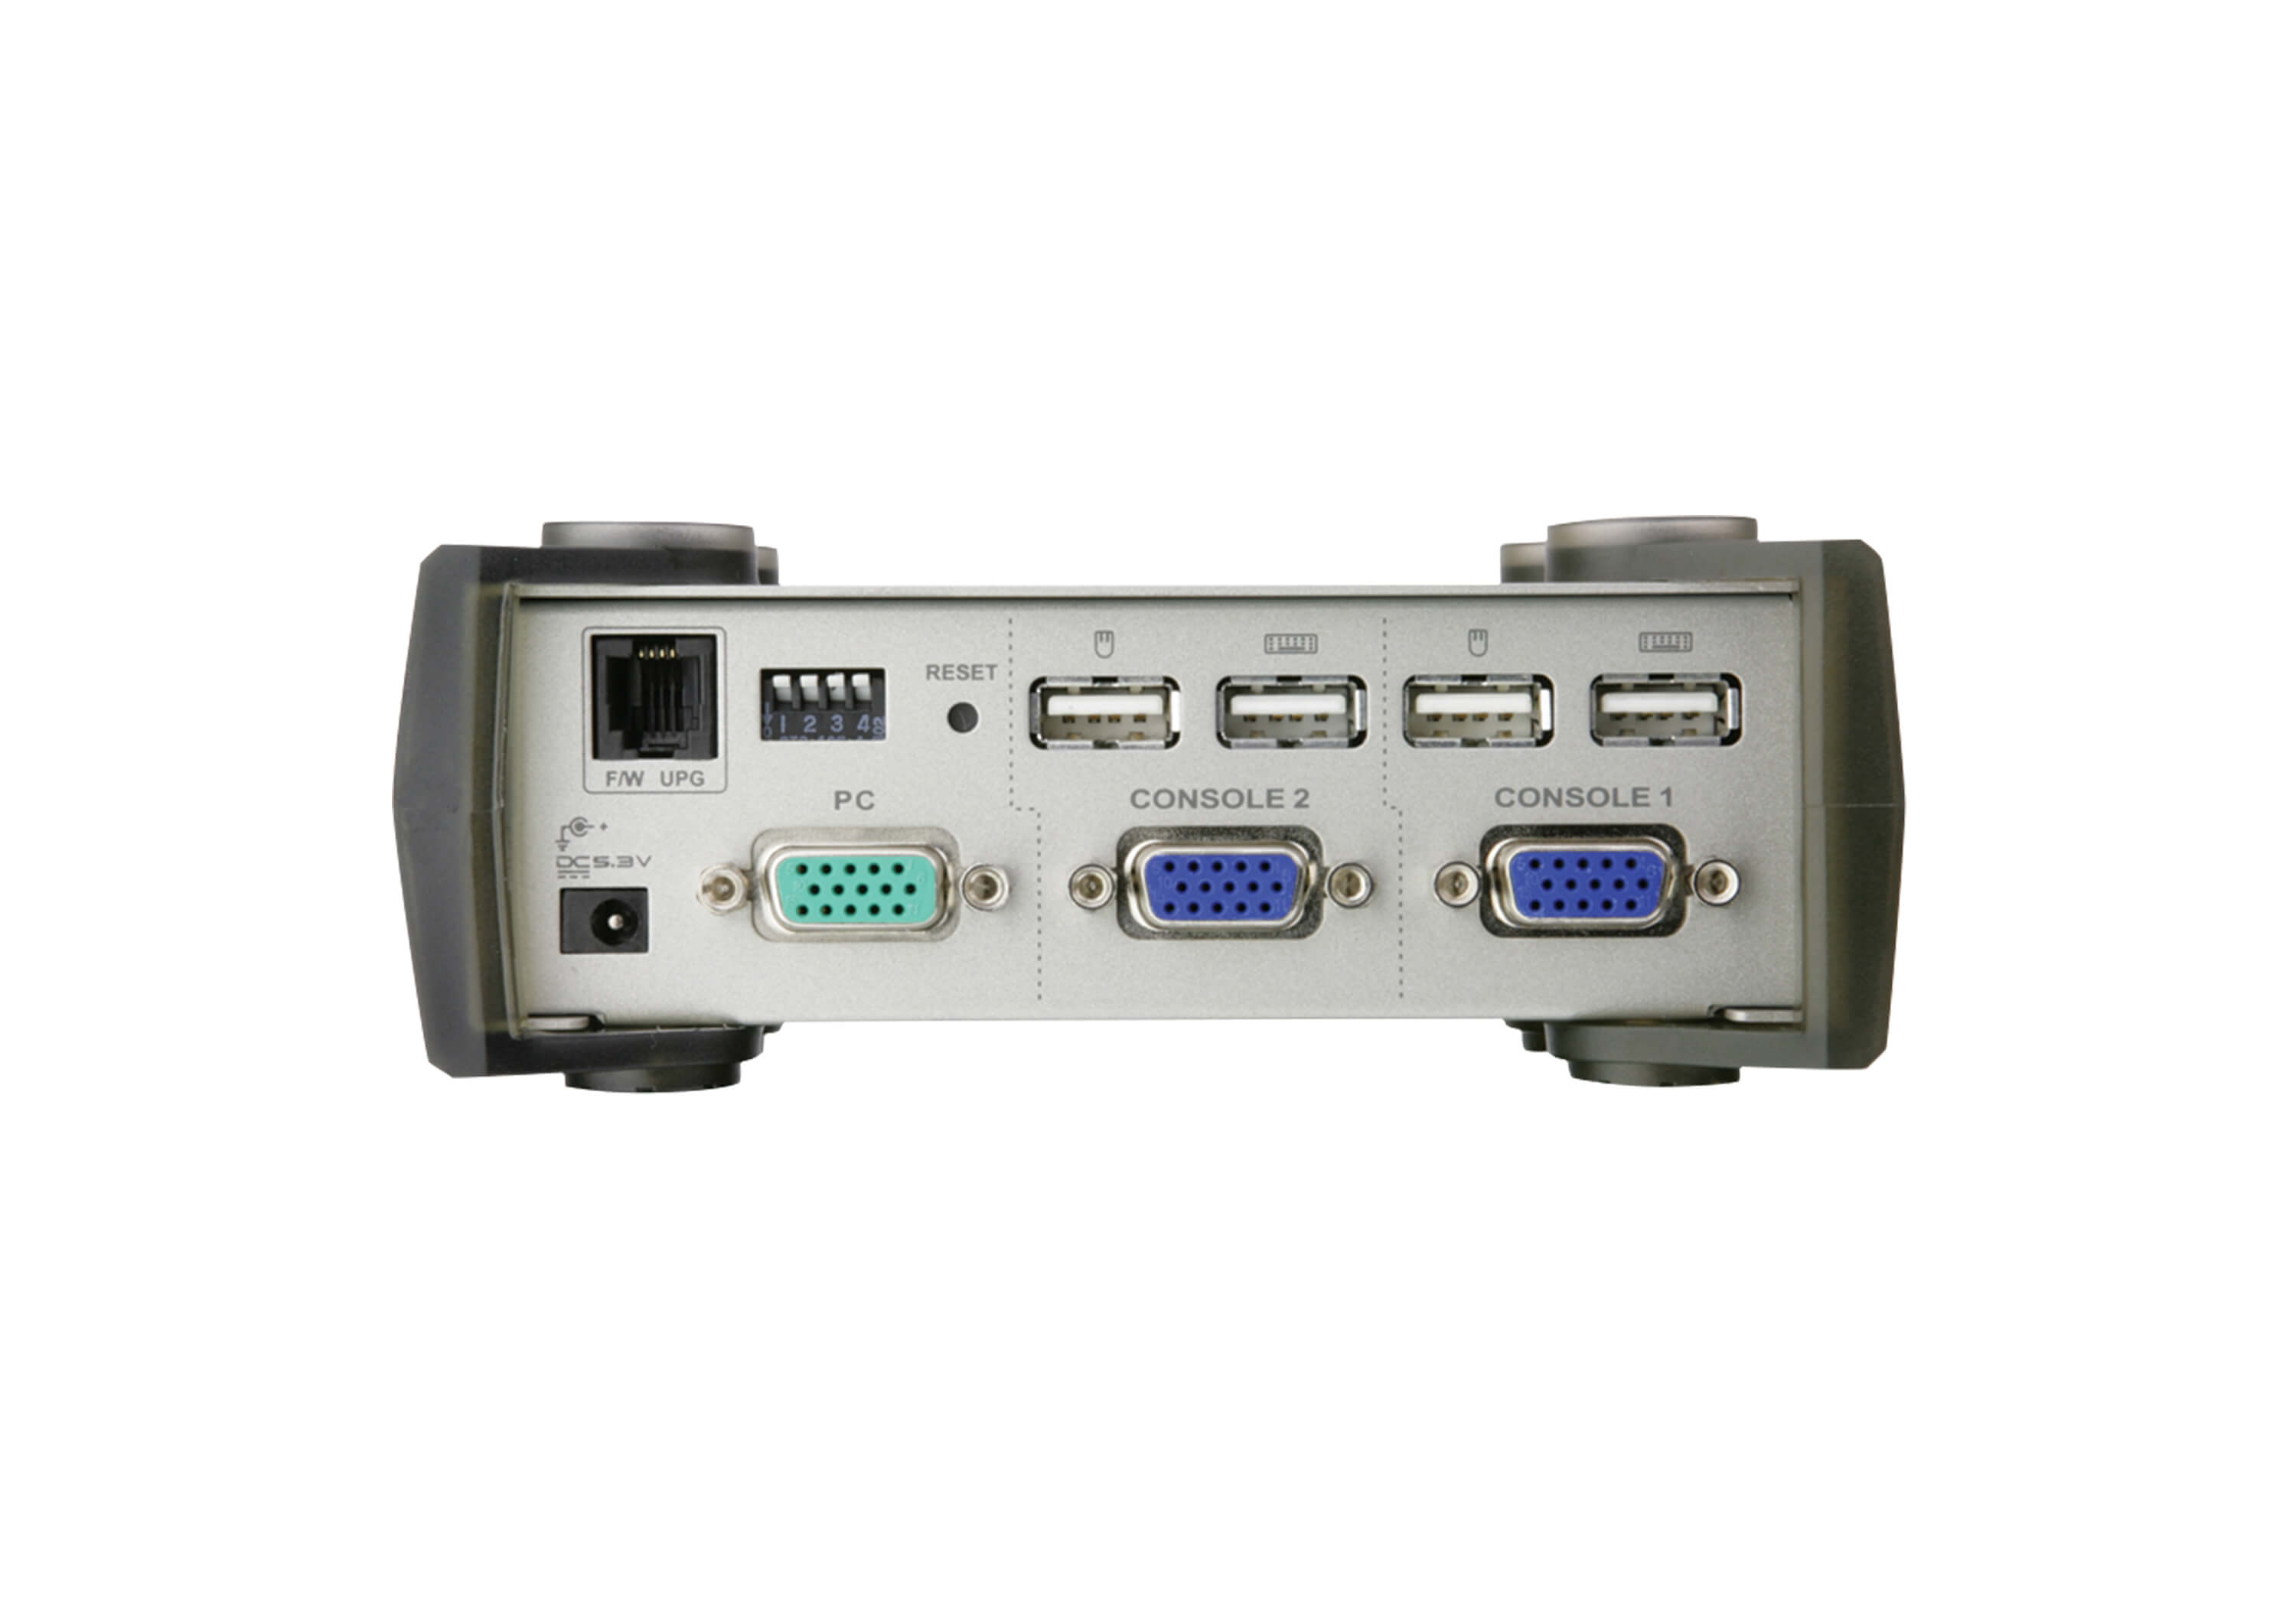 USB VGA Computer Sharing Device and Access Control Box Kit-3